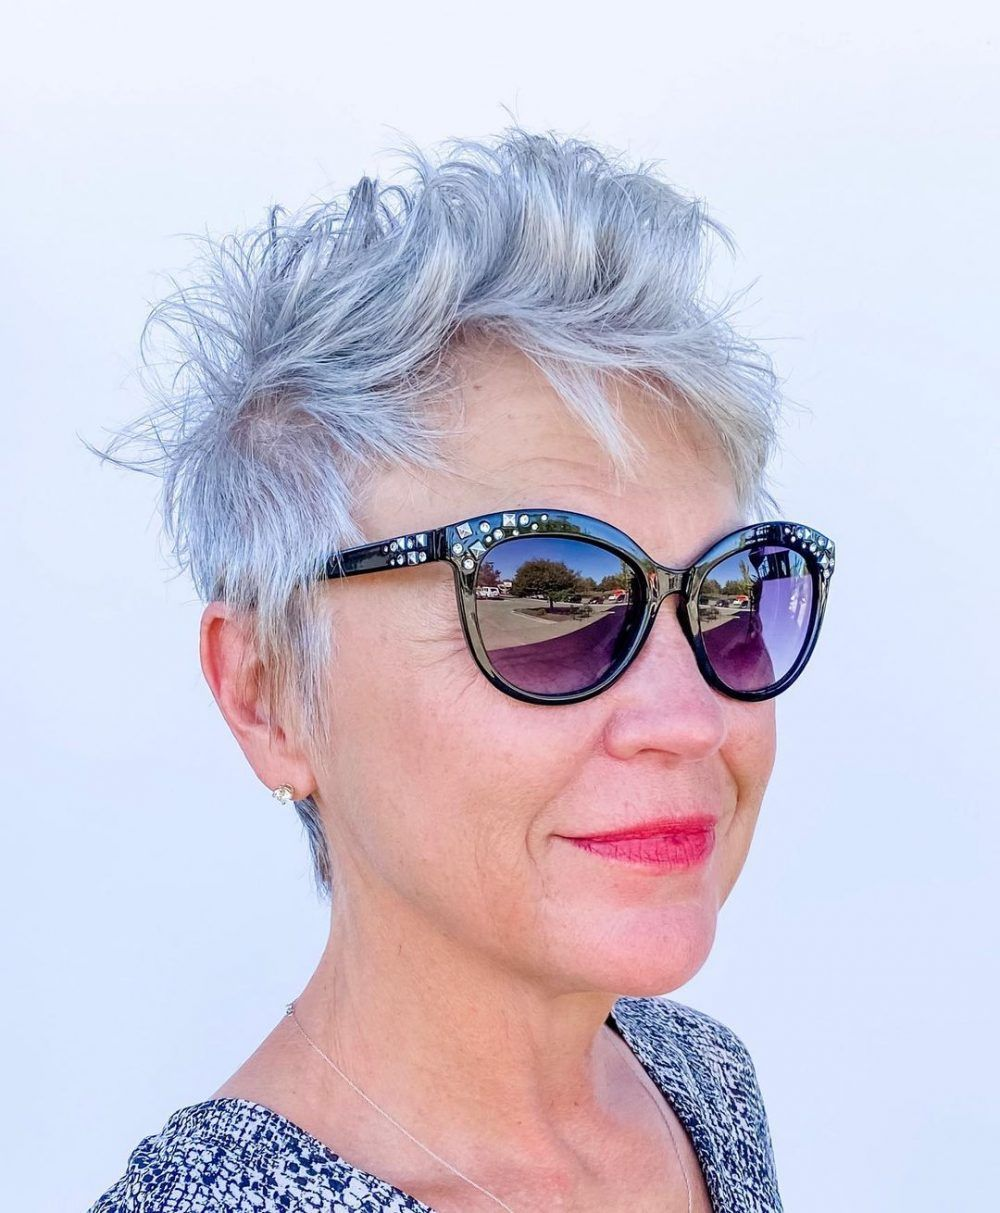 100 Short Haircut Styles for Over 50 Women in 2021 24c8d58e56e5f532bb25aa9a3caa9a41